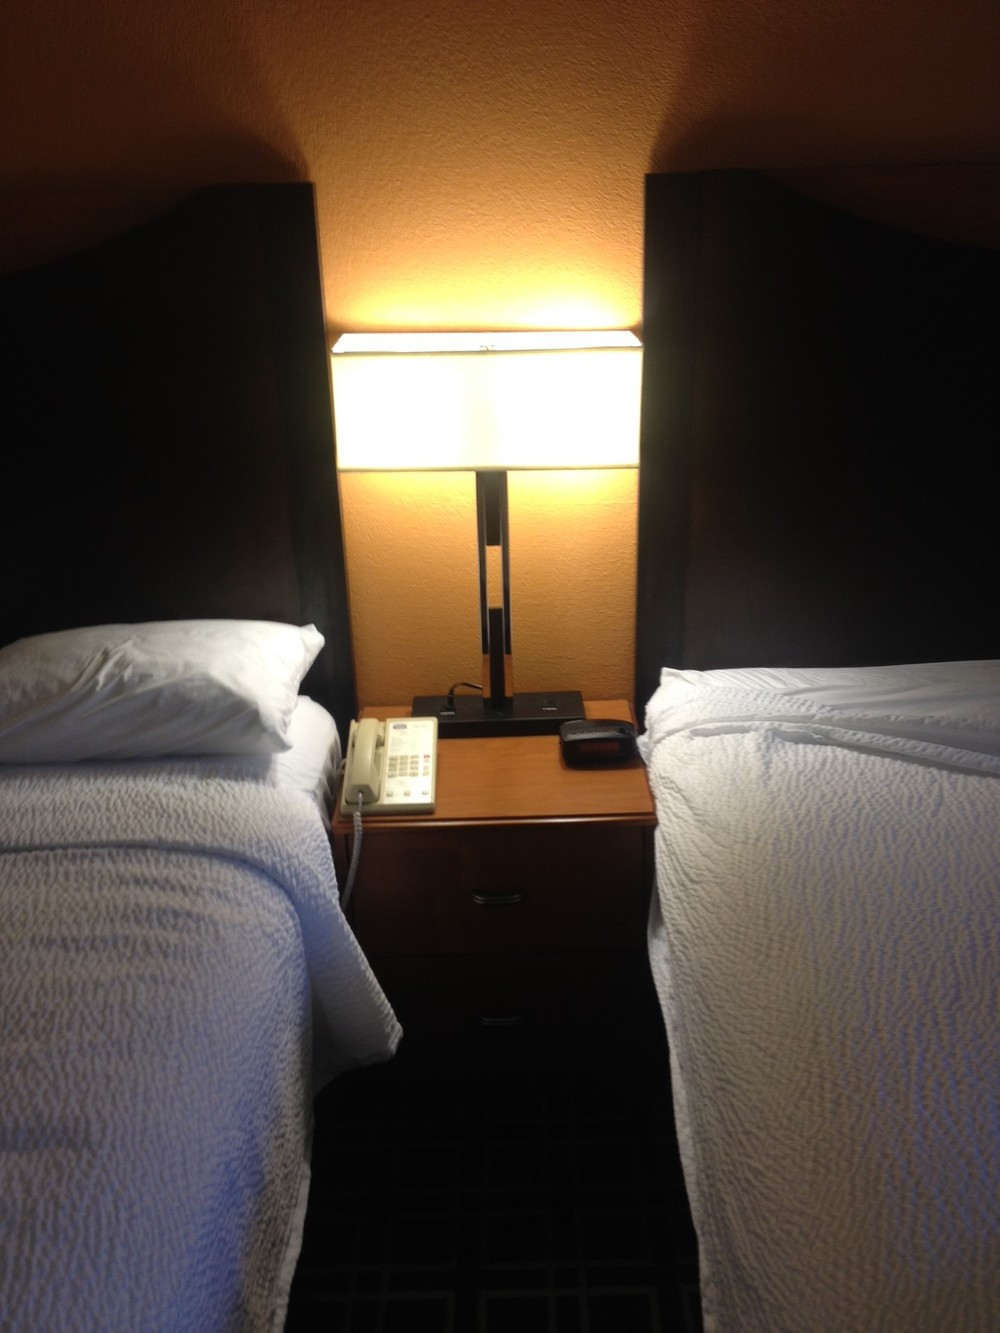 Nashville Fairfield Inn and Suites at Opryland 09-14-2013 (hotel 2)